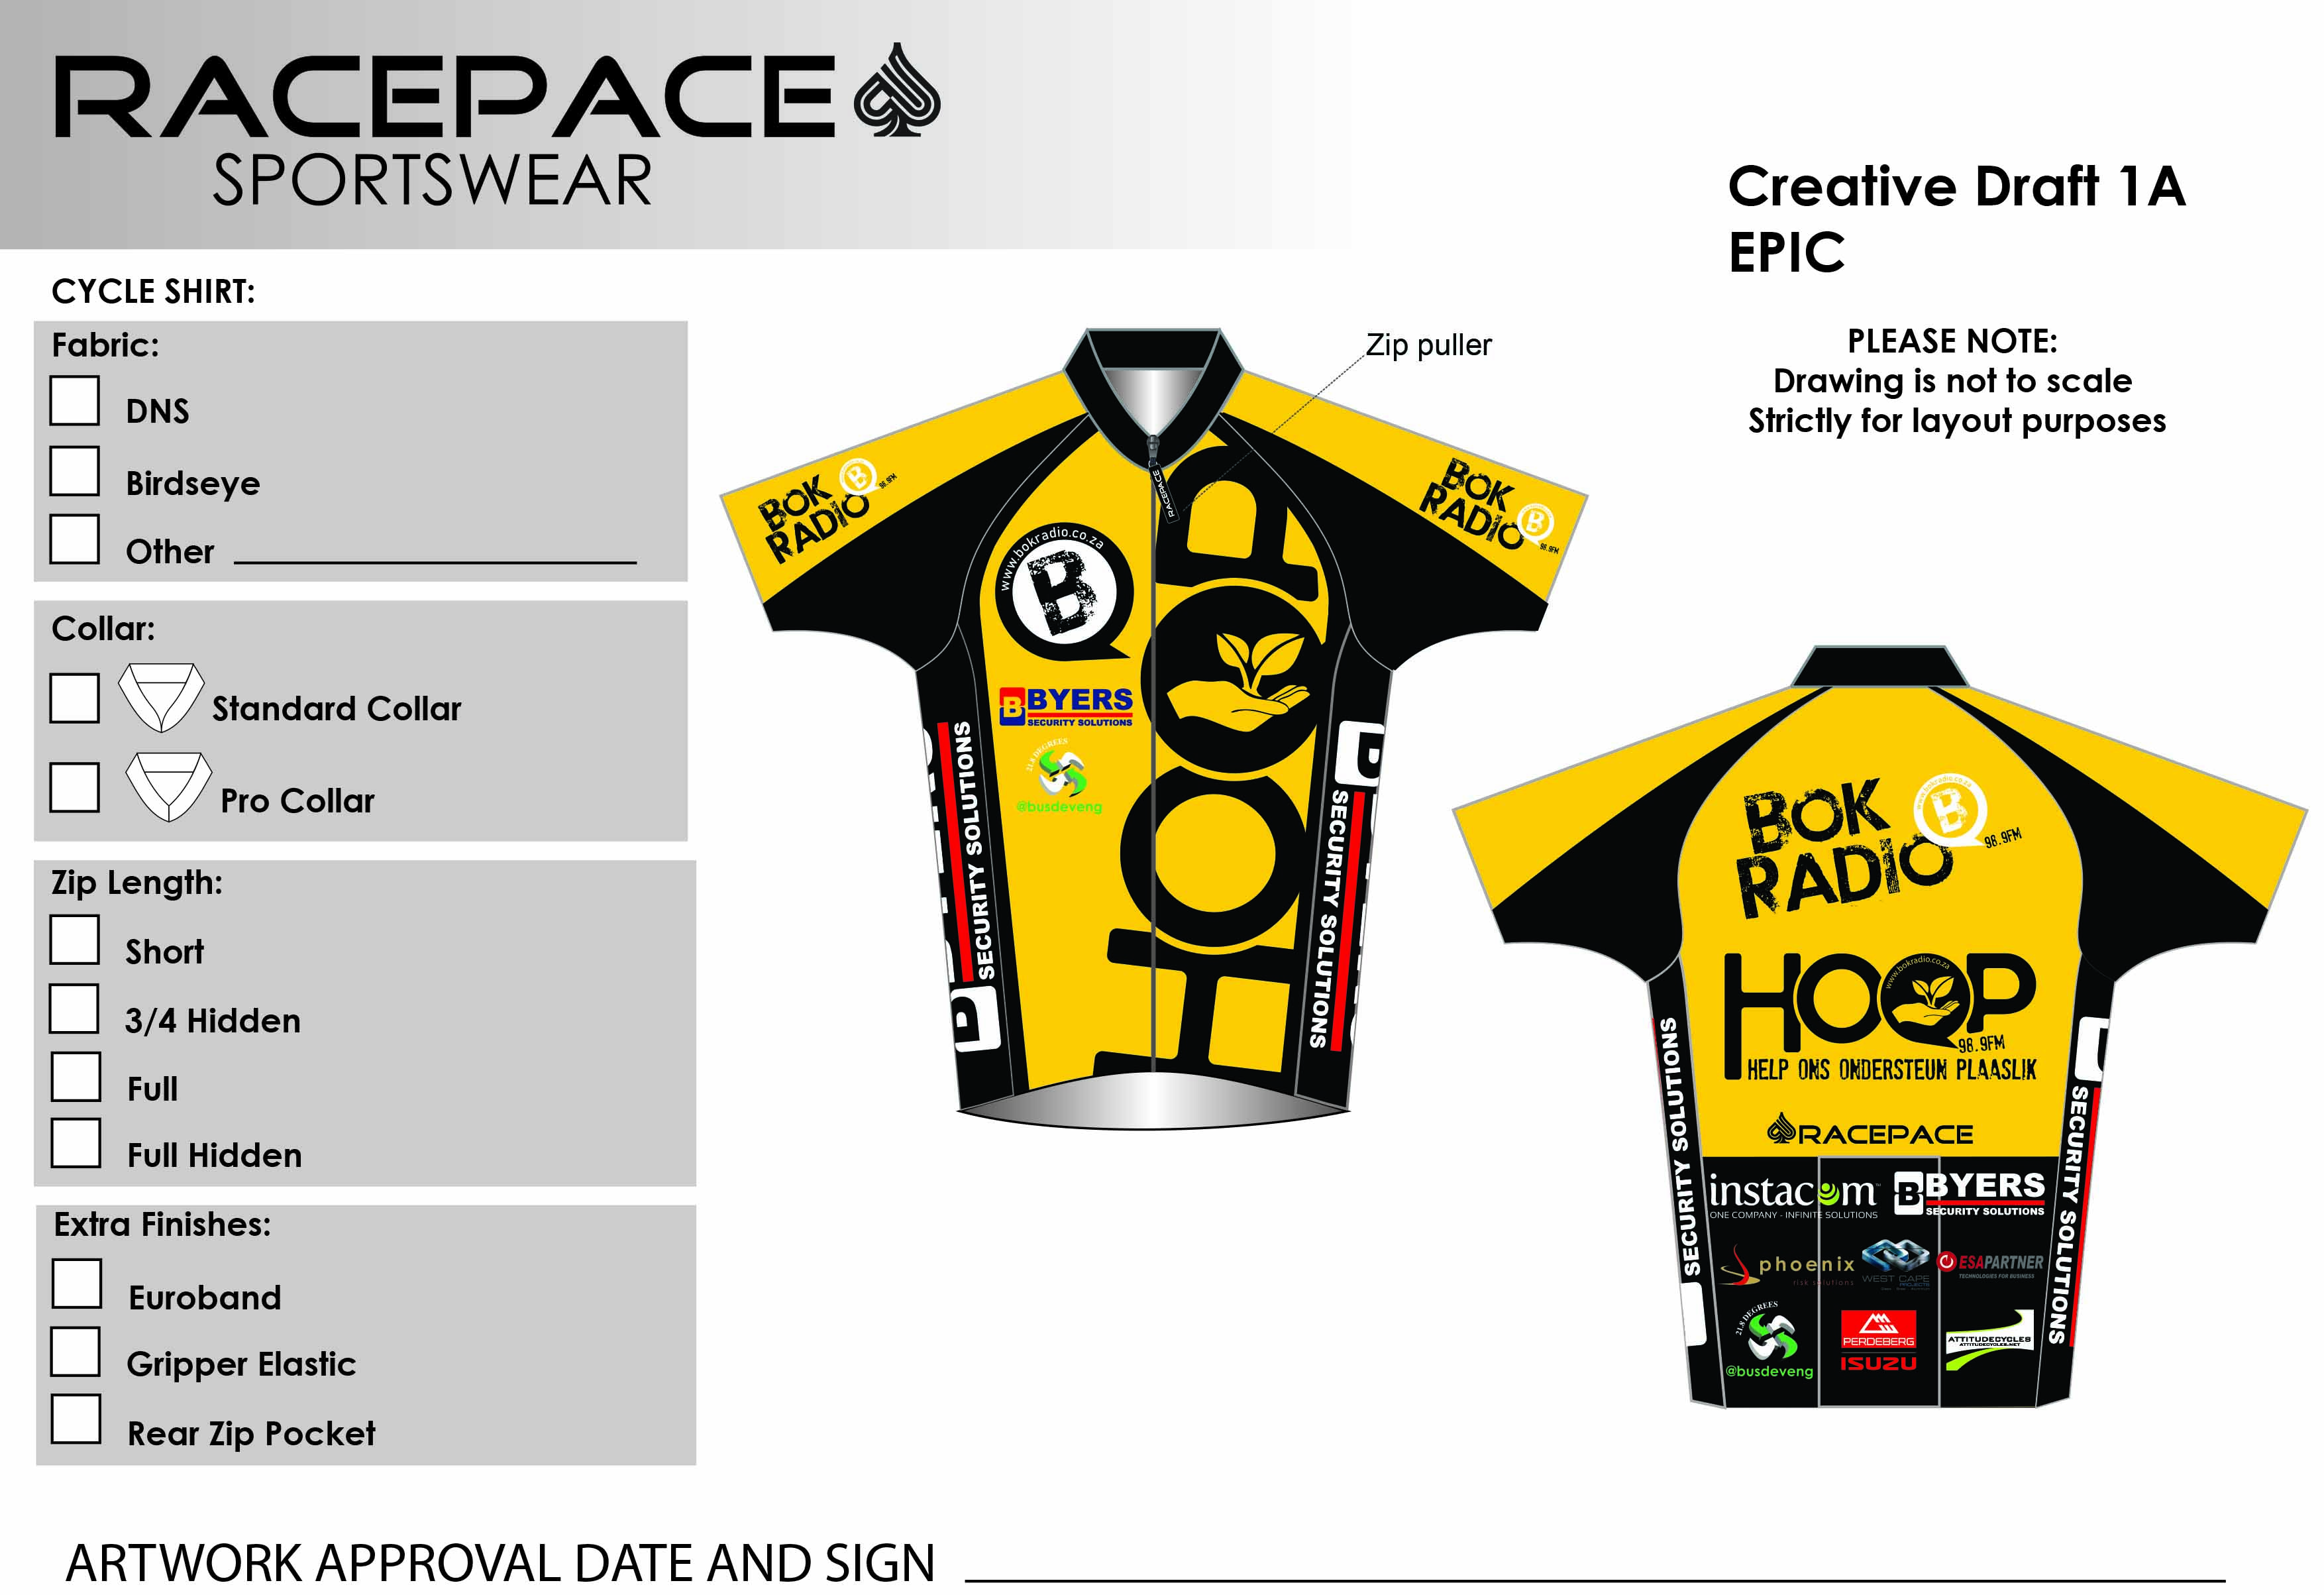 Bok Radio EPIC Cycle Shirt Draft1A